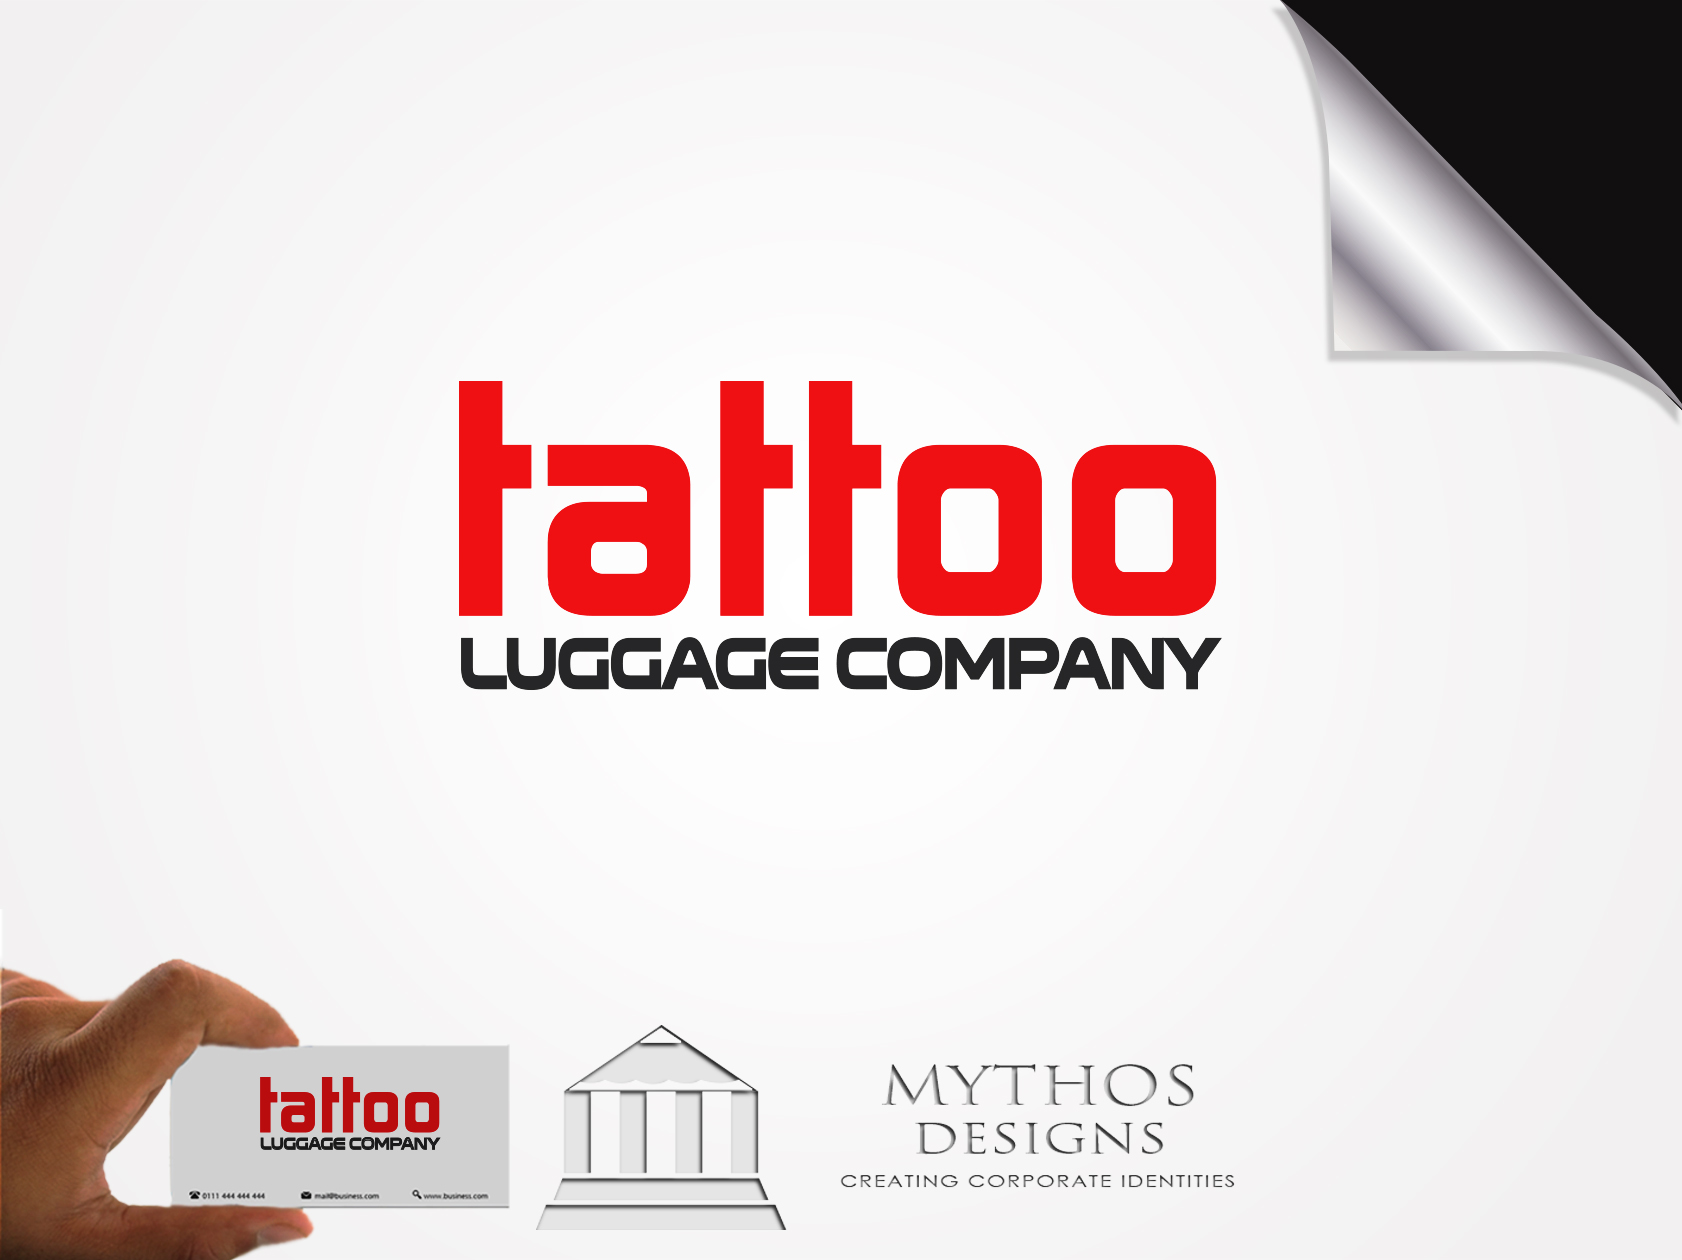 Logo Design by Mythos Designs - Entry No. 139 in the Logo Design Contest Artistic Logo Design for Tattoo Luggage Company.